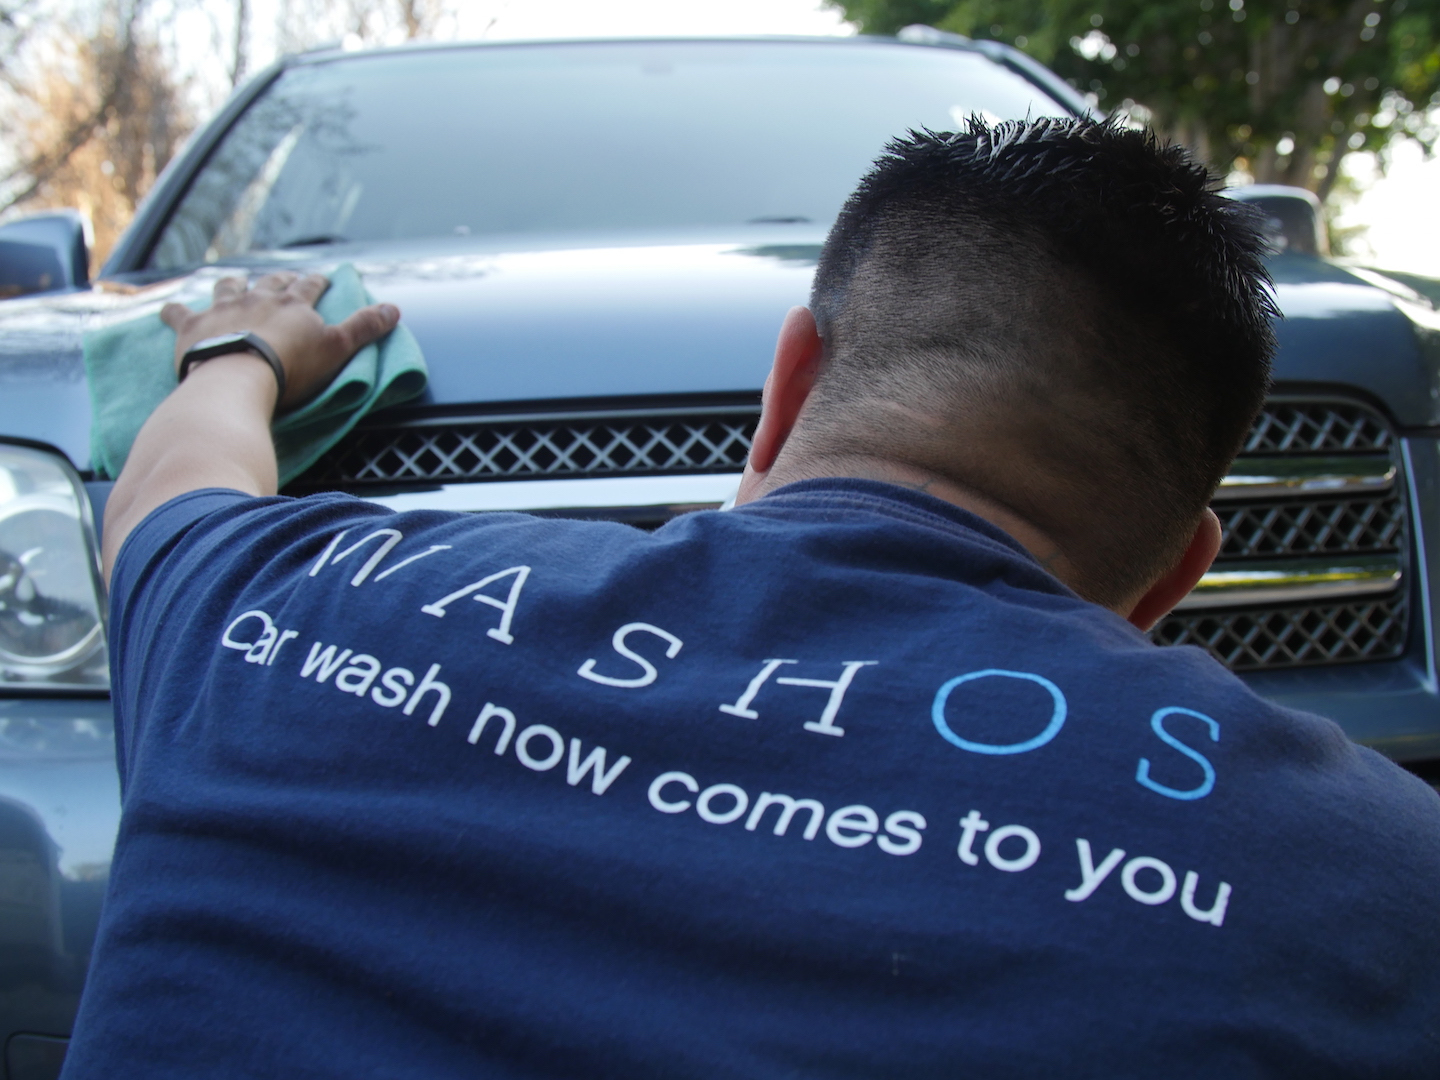 Washos The Mobile Car Wash And Detailing App Announces New